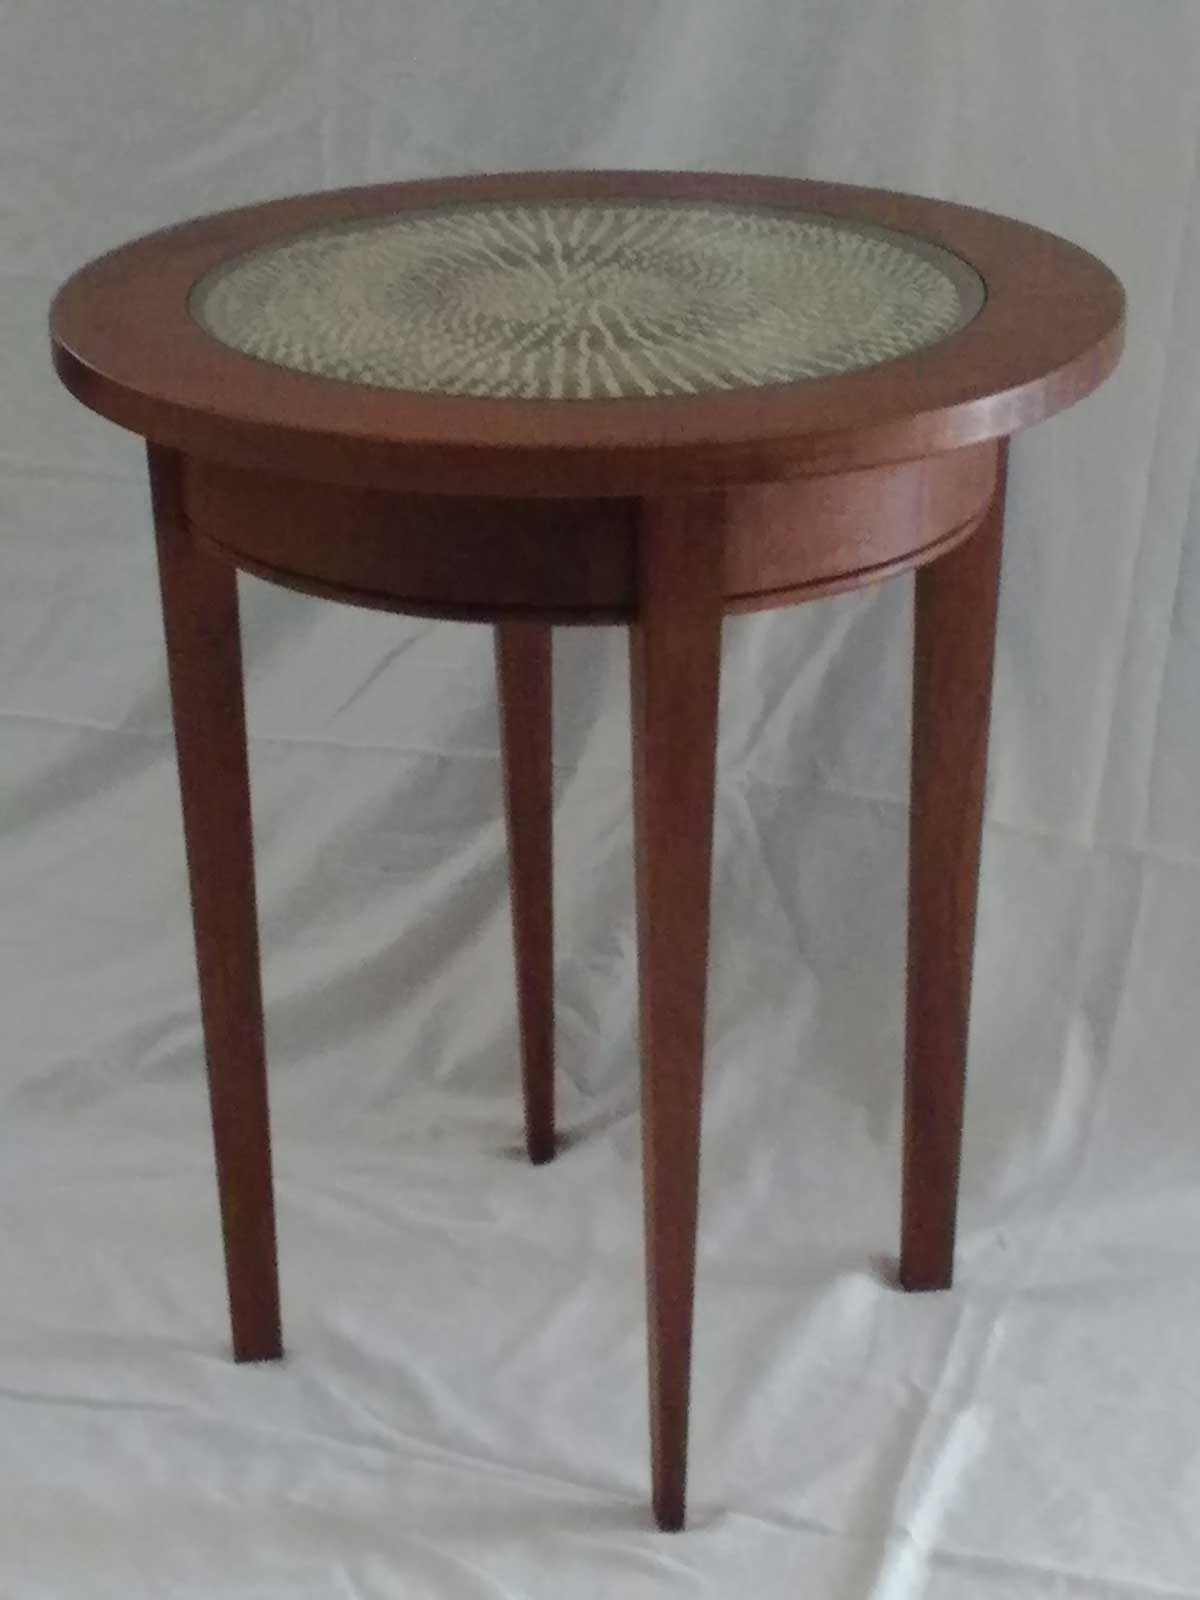 Pete Rock Sweet Grass Table #19 Sweet Grass Table $1,000